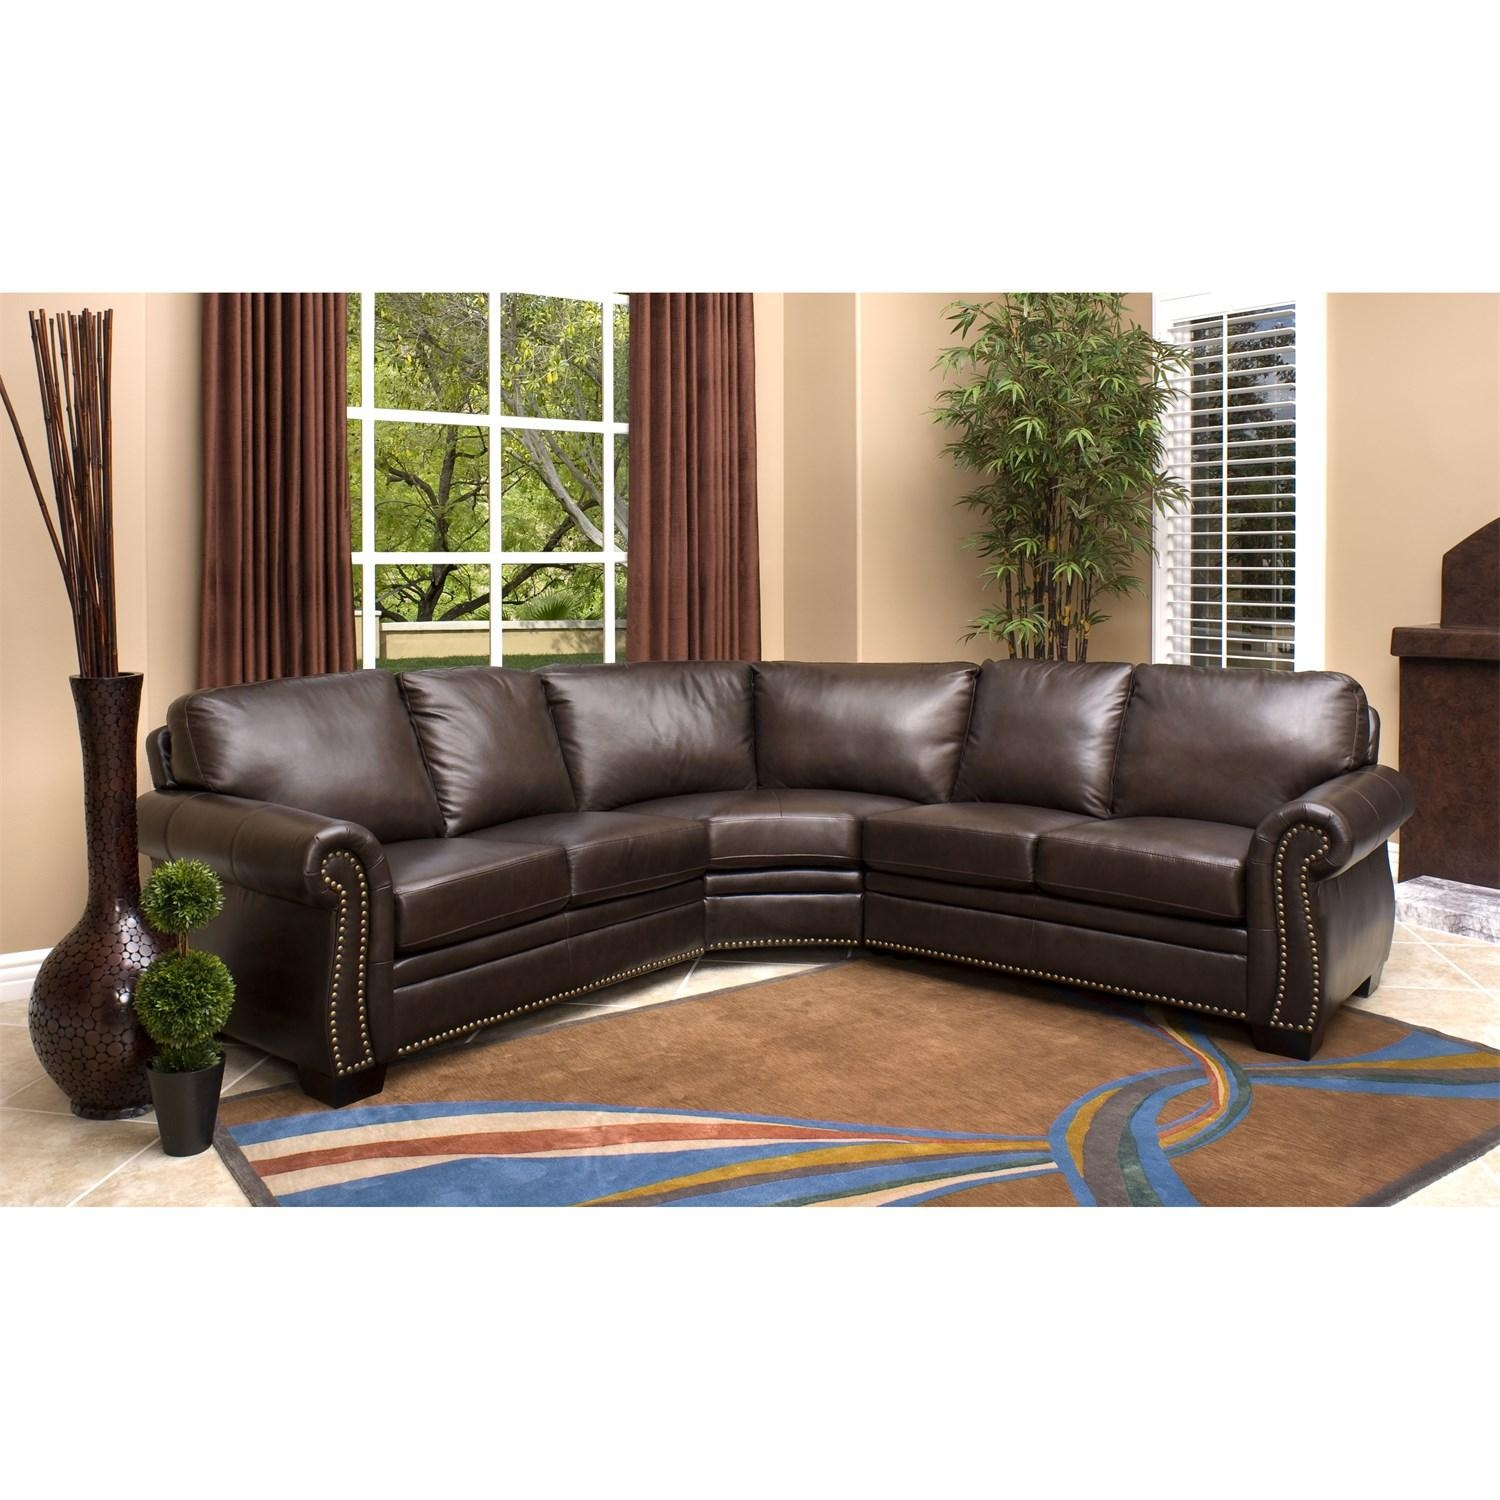 Abbyson Living Ci N410 Brn Oxford Italian Leather Sectional Sofa With Regard To Abbyson Sectional Sofa (View 8 of 15)